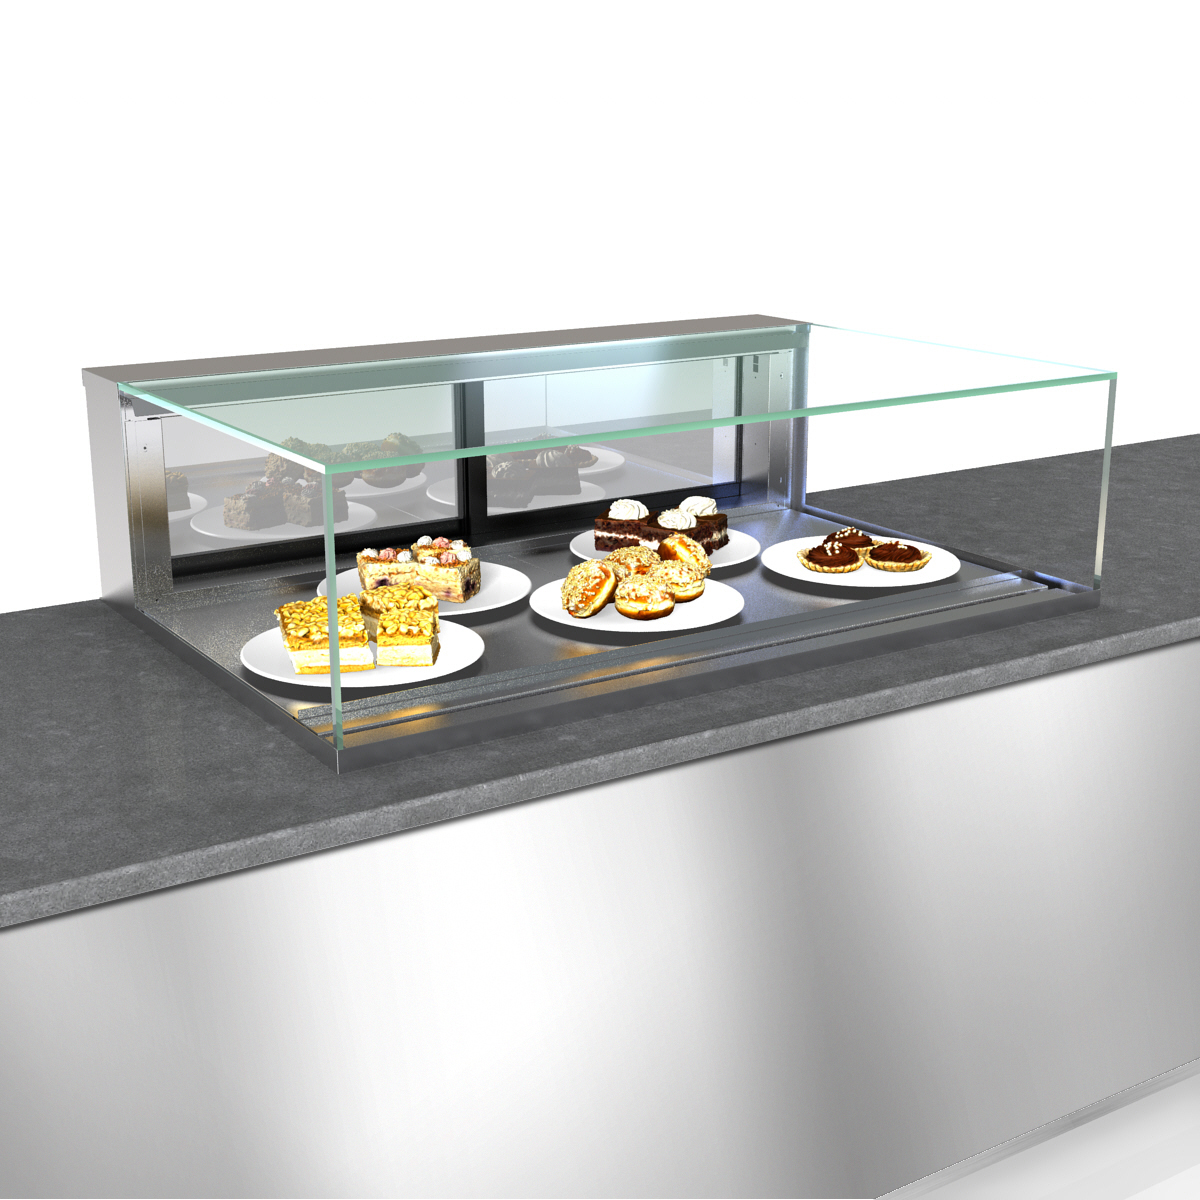 Structural Concepts NE4813DSV display case, non-refrigerated, slide in counter